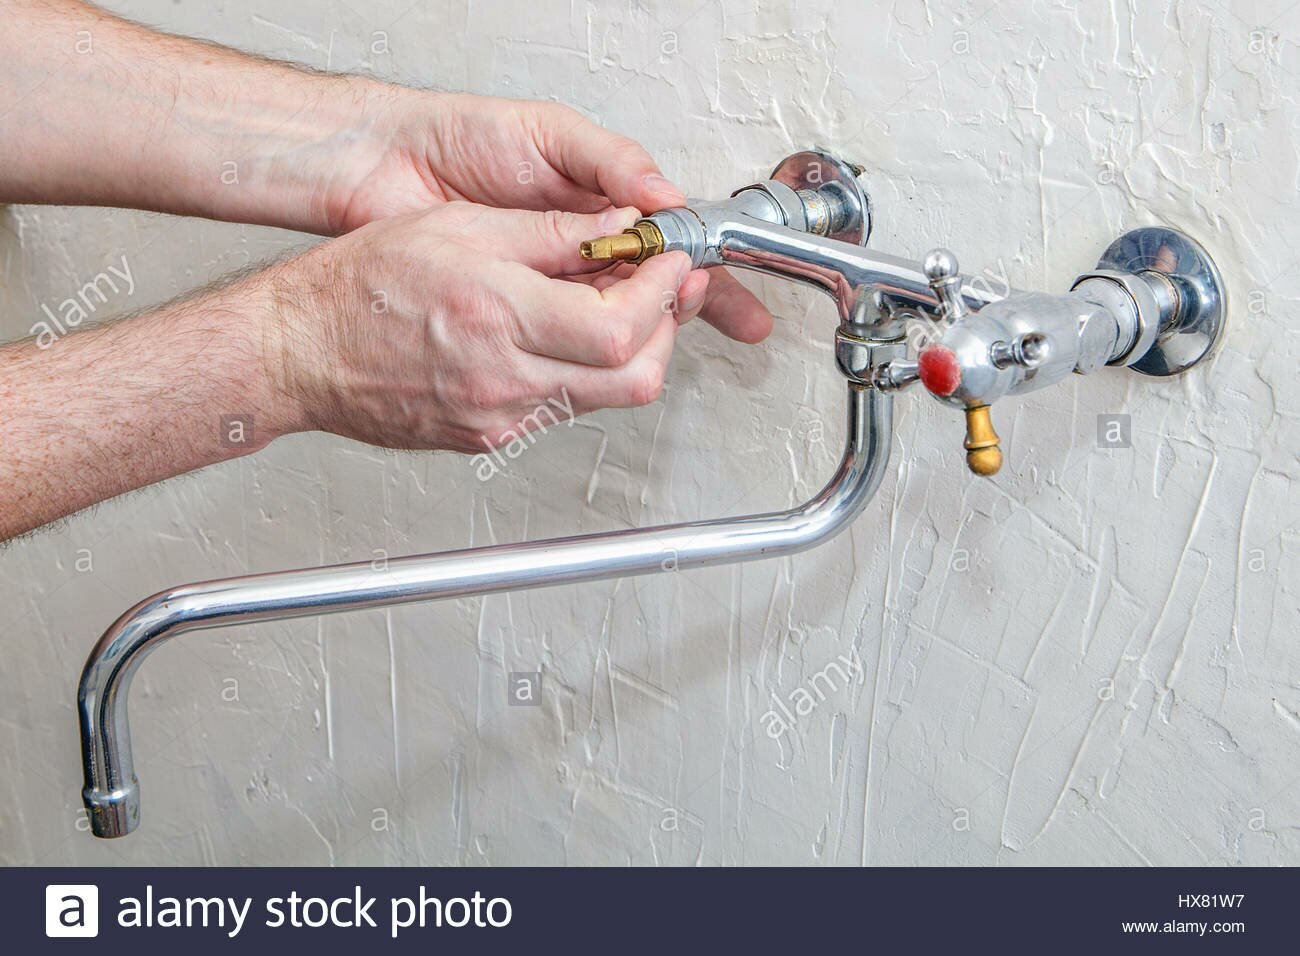 How To Repair A Leaking Kitchen Faucet | How To Fix A Dripping Kitchen  Faucet |